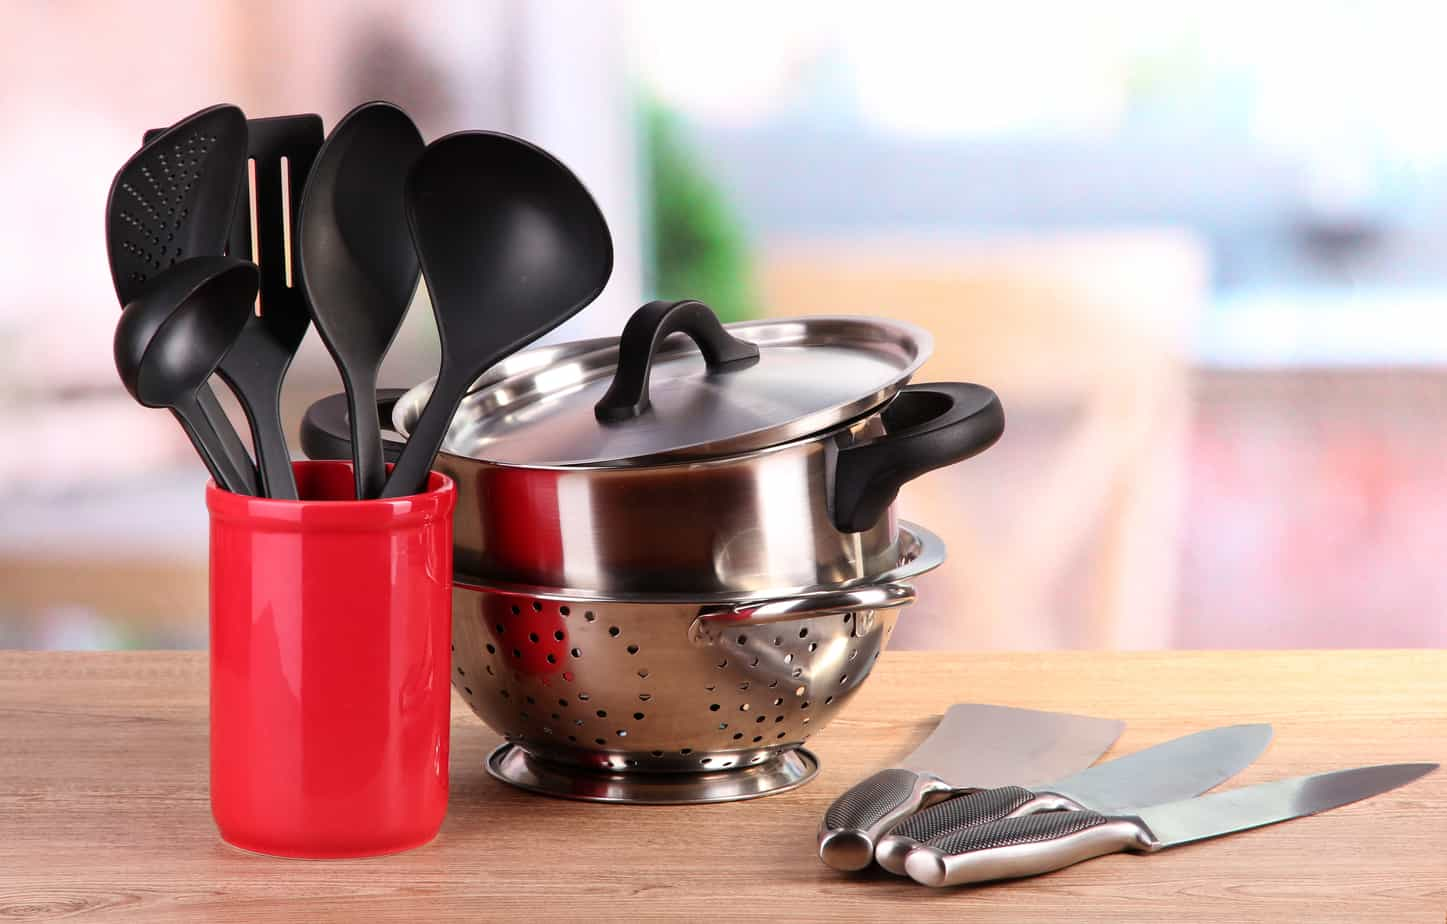 10 best kitchen gifts under 25 living on the cheap Funny kitchen gadgets gifts